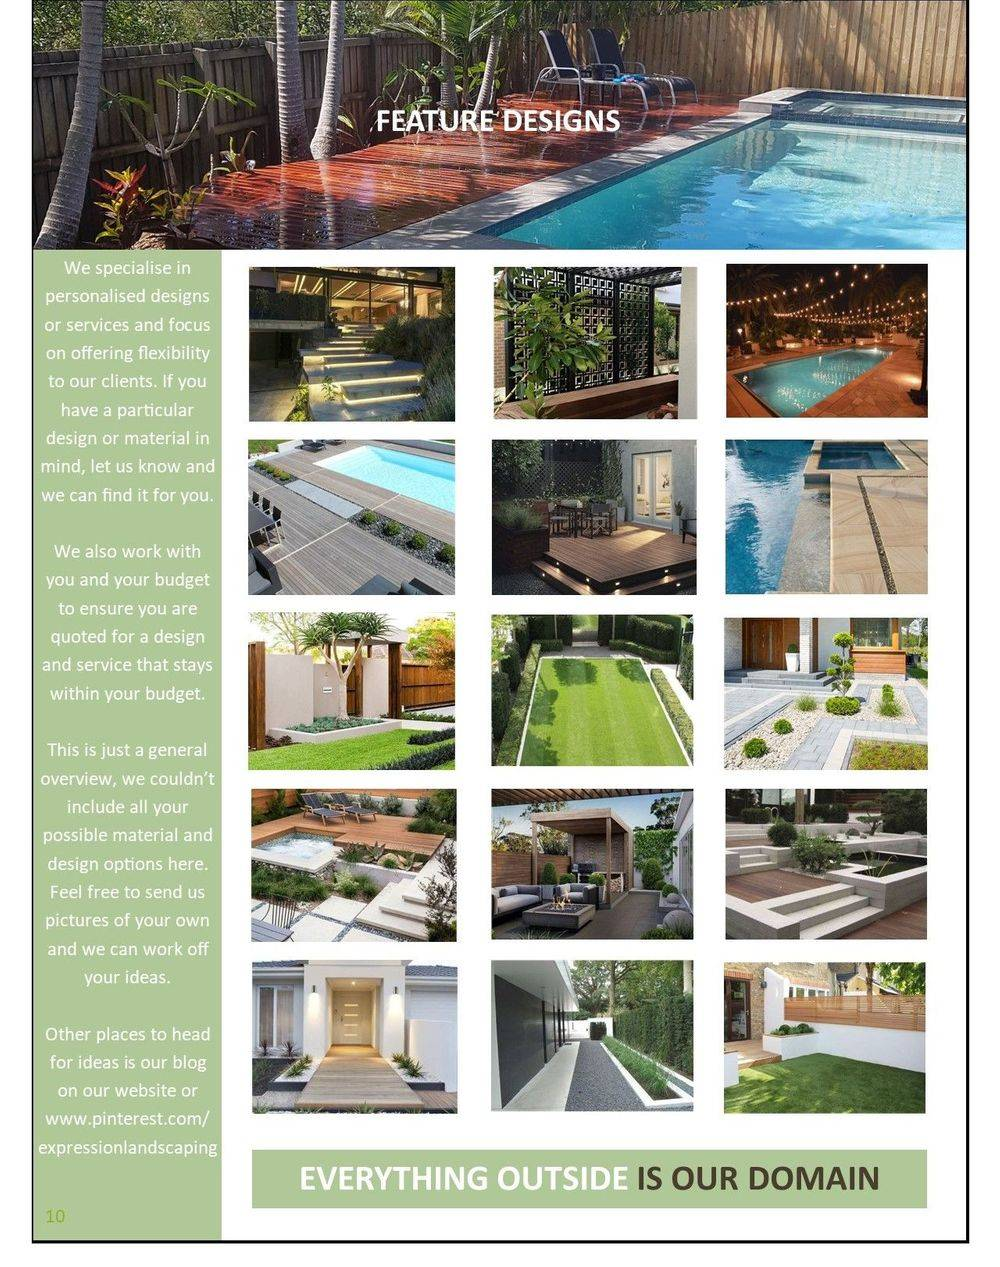 Expression Landscaping design book, landscaping ideas, landscaping materials